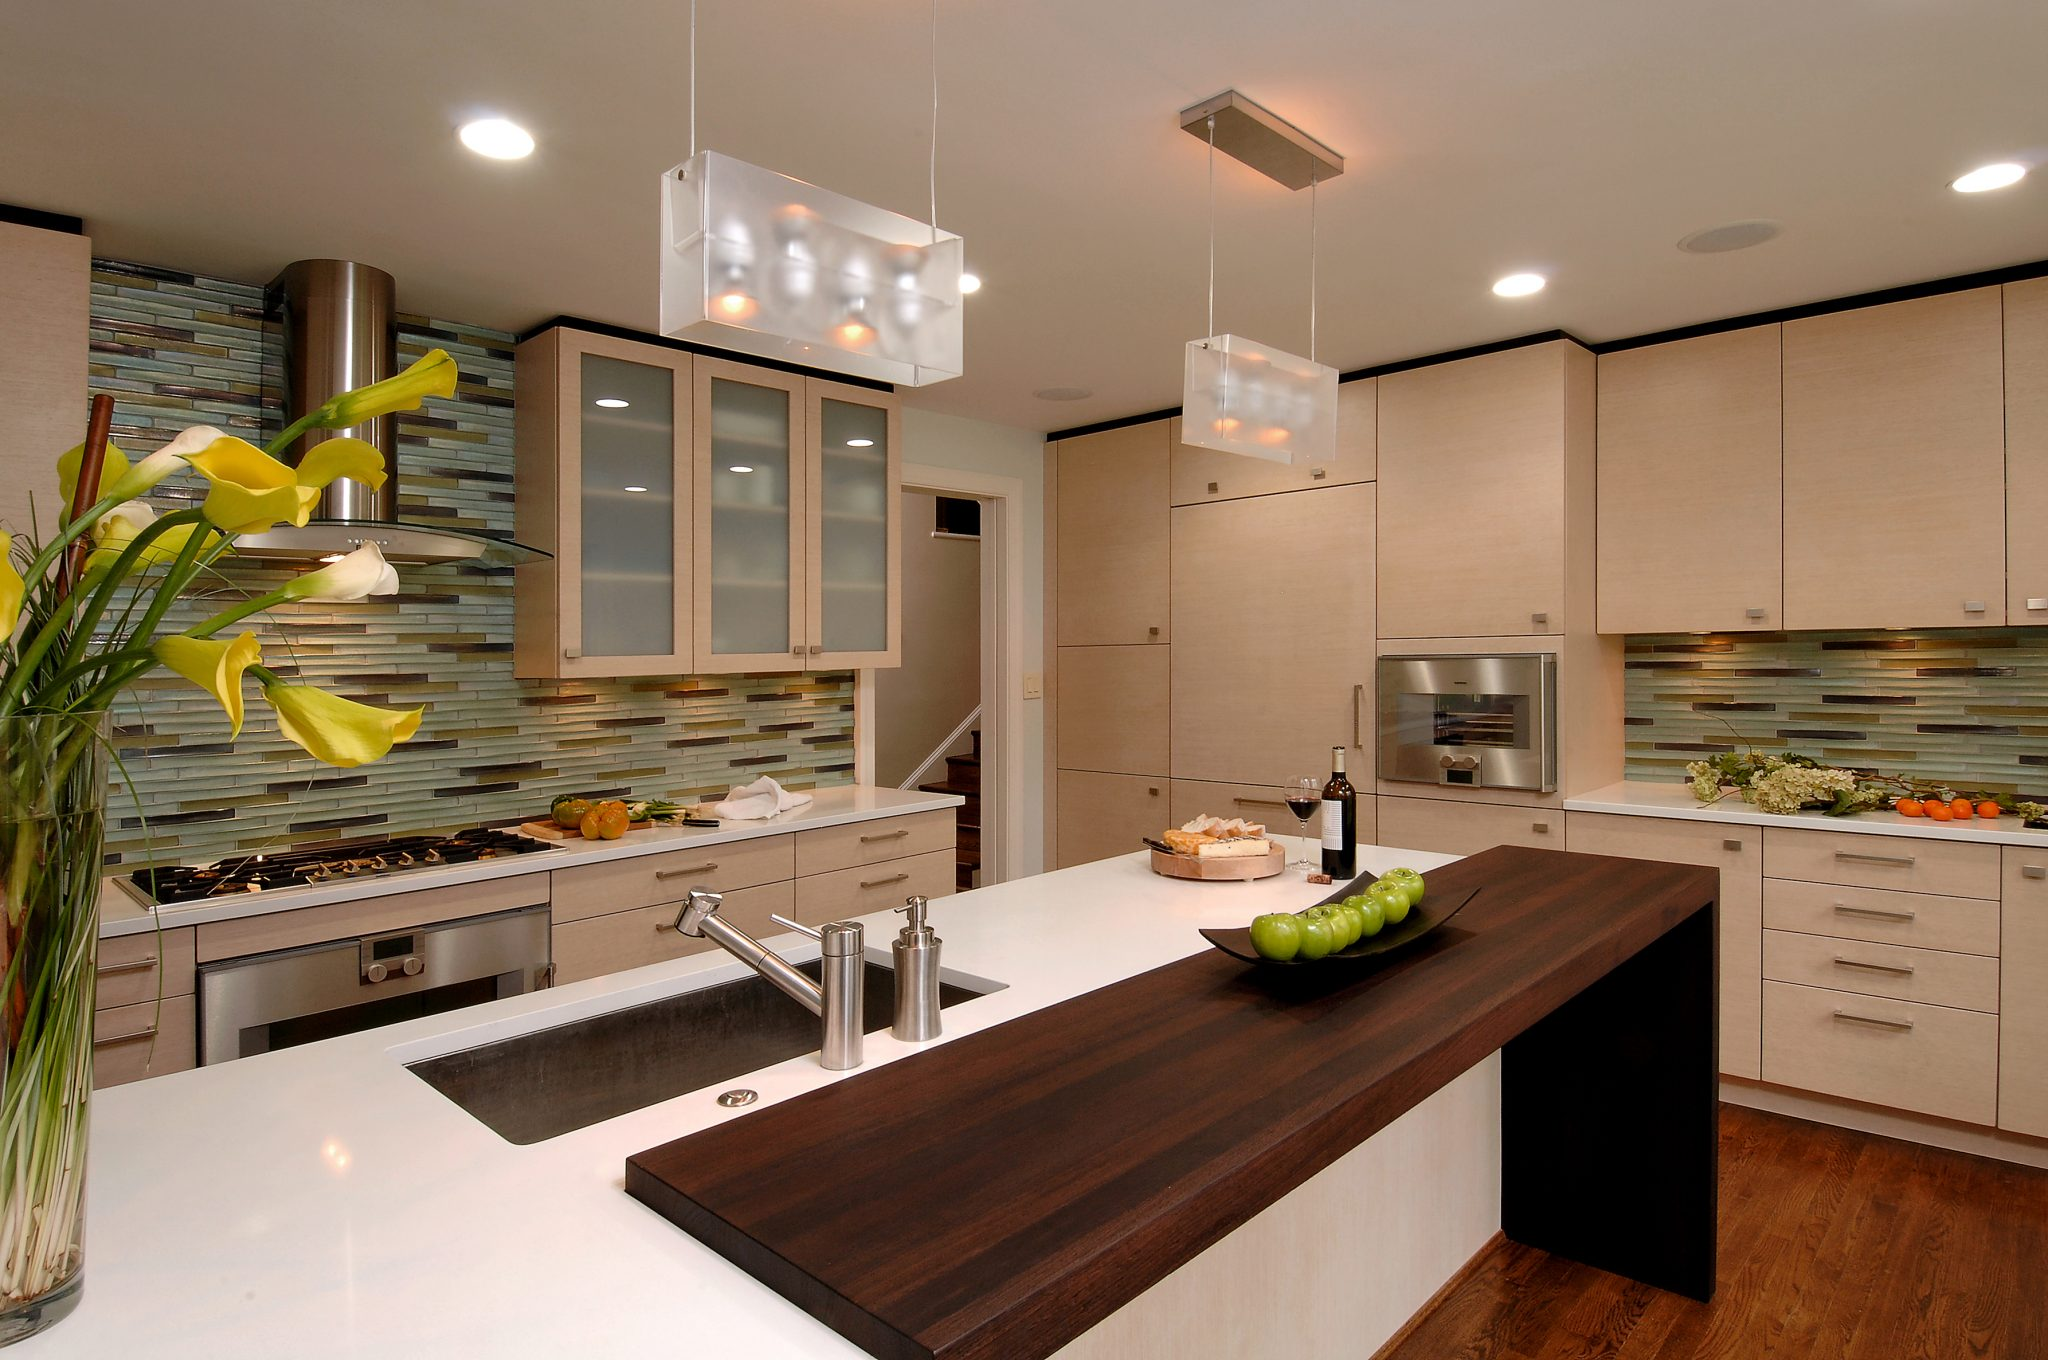 Plywood Kitchen Cabinets 5 Design Ideas Using Hardwood Plywood Columbia Forest Products